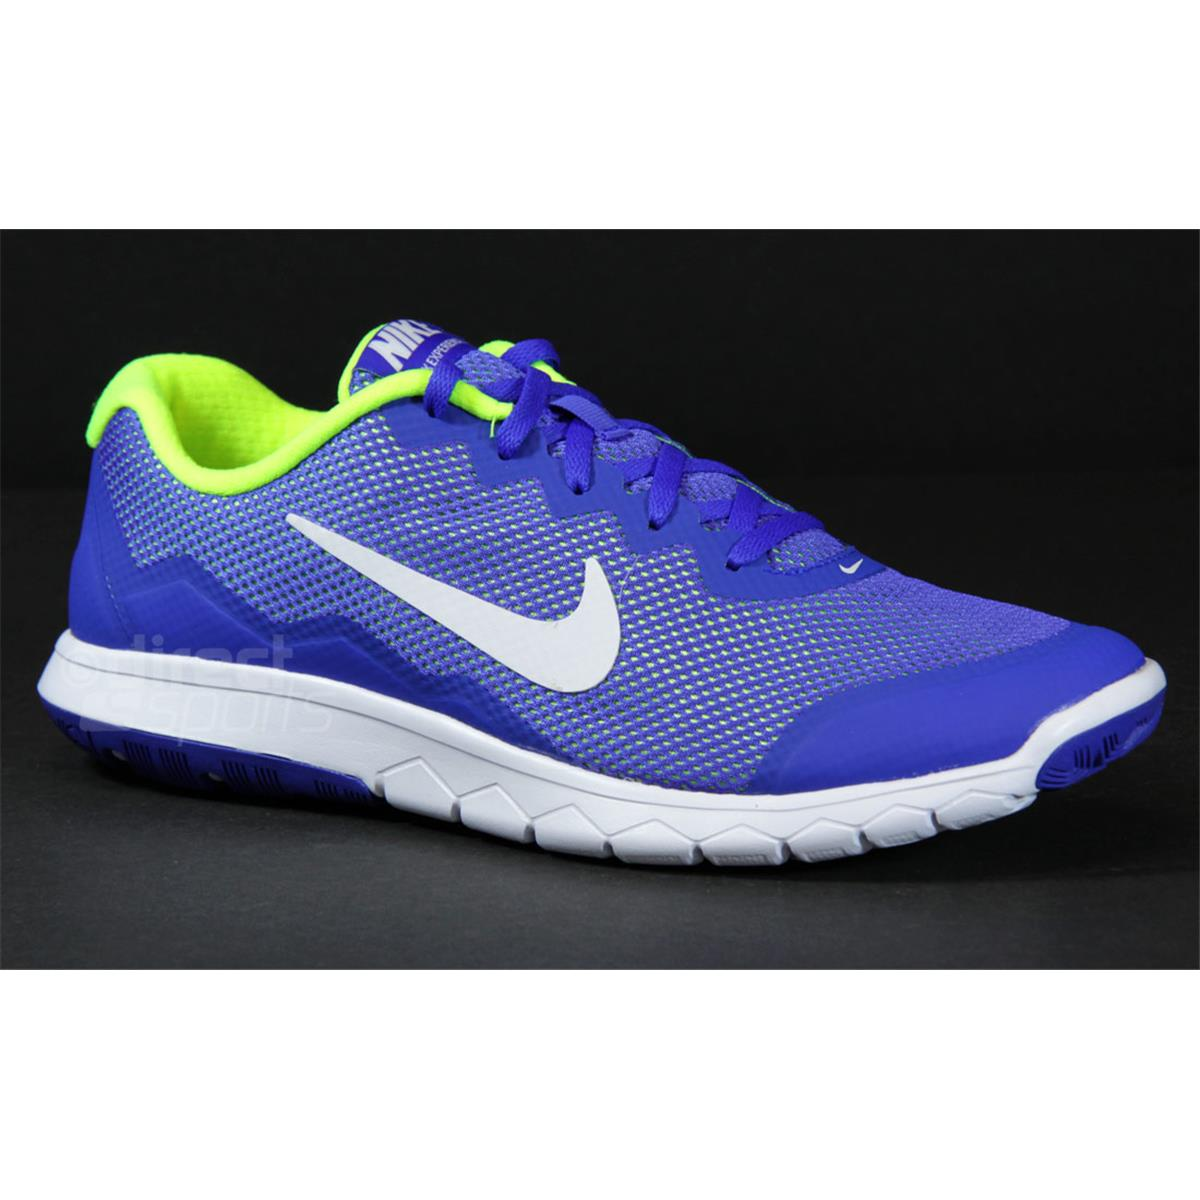 14e813d4c0e9 Nike Flex Experience Run 4 Mens Running Shoes (Racer Blue ...